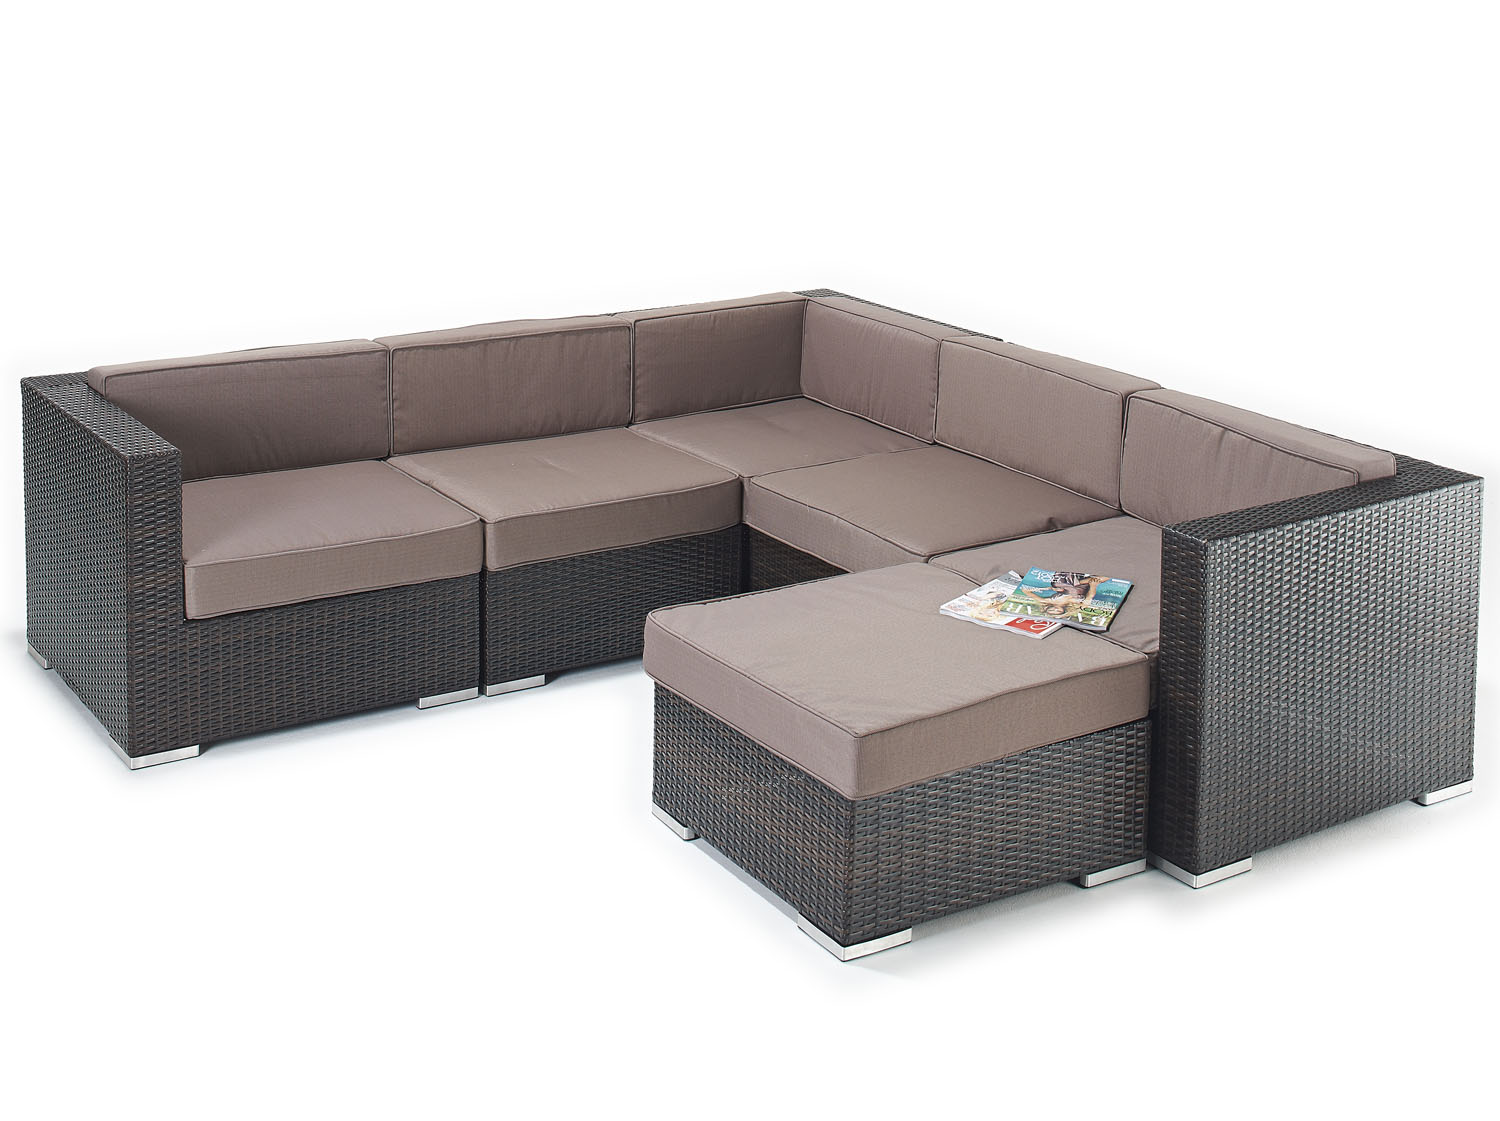 elegant rattan corner sofa set jessica all weather rattan garden furniture. Black Bedroom Furniture Sets. Home Design Ideas